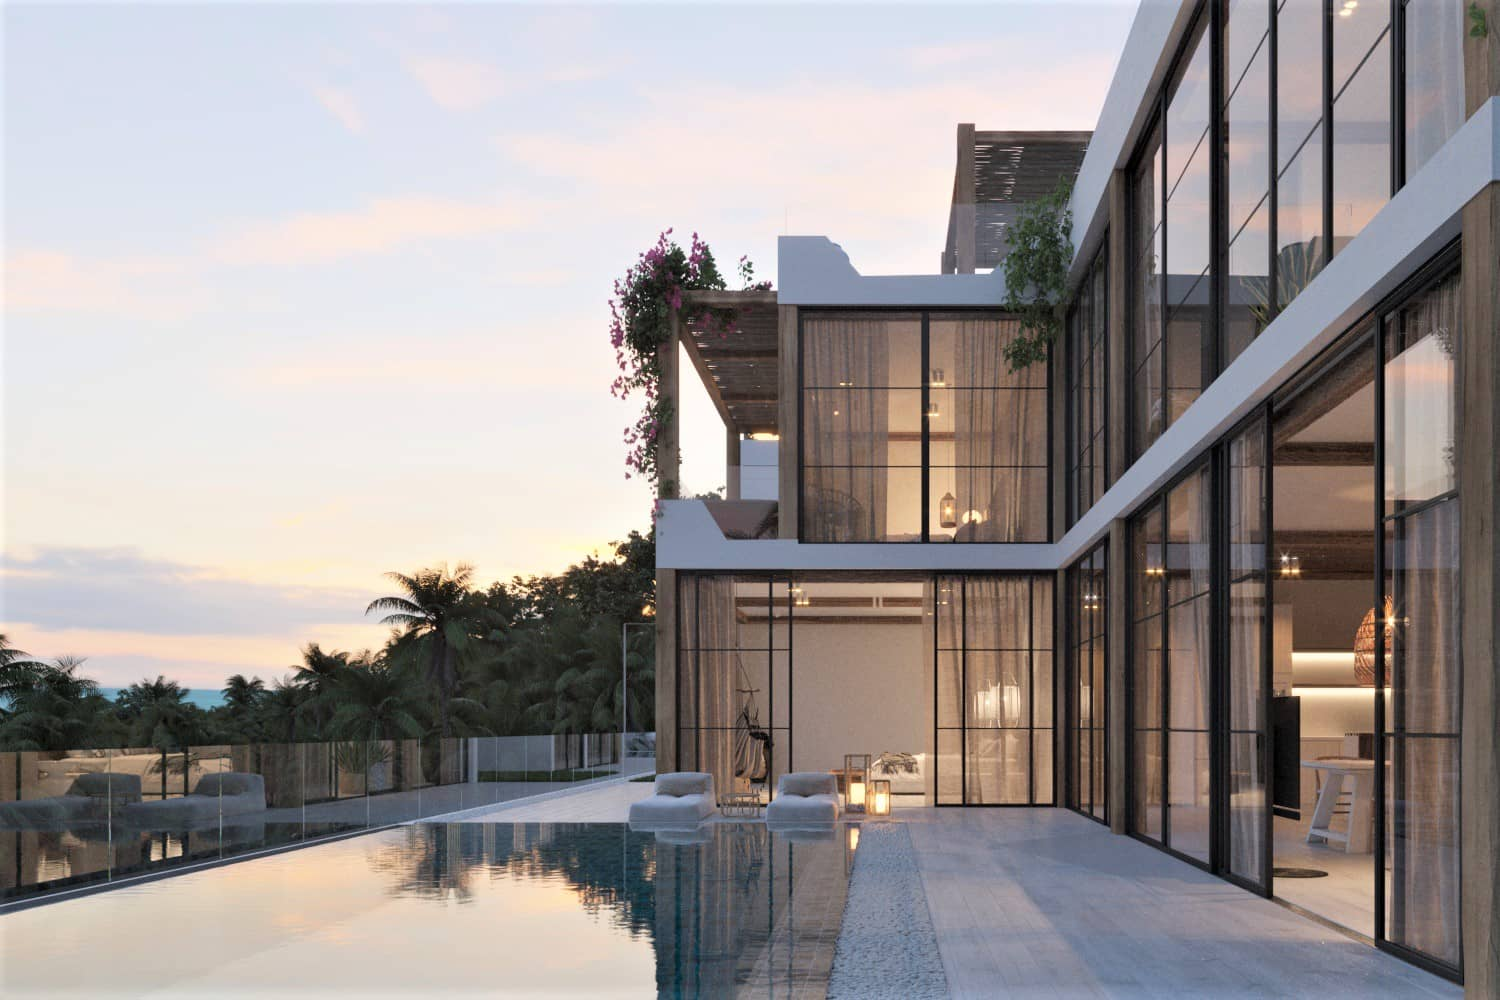 Spectacular Koh Samui Villa with Seaview to Chaweng Noi Bay